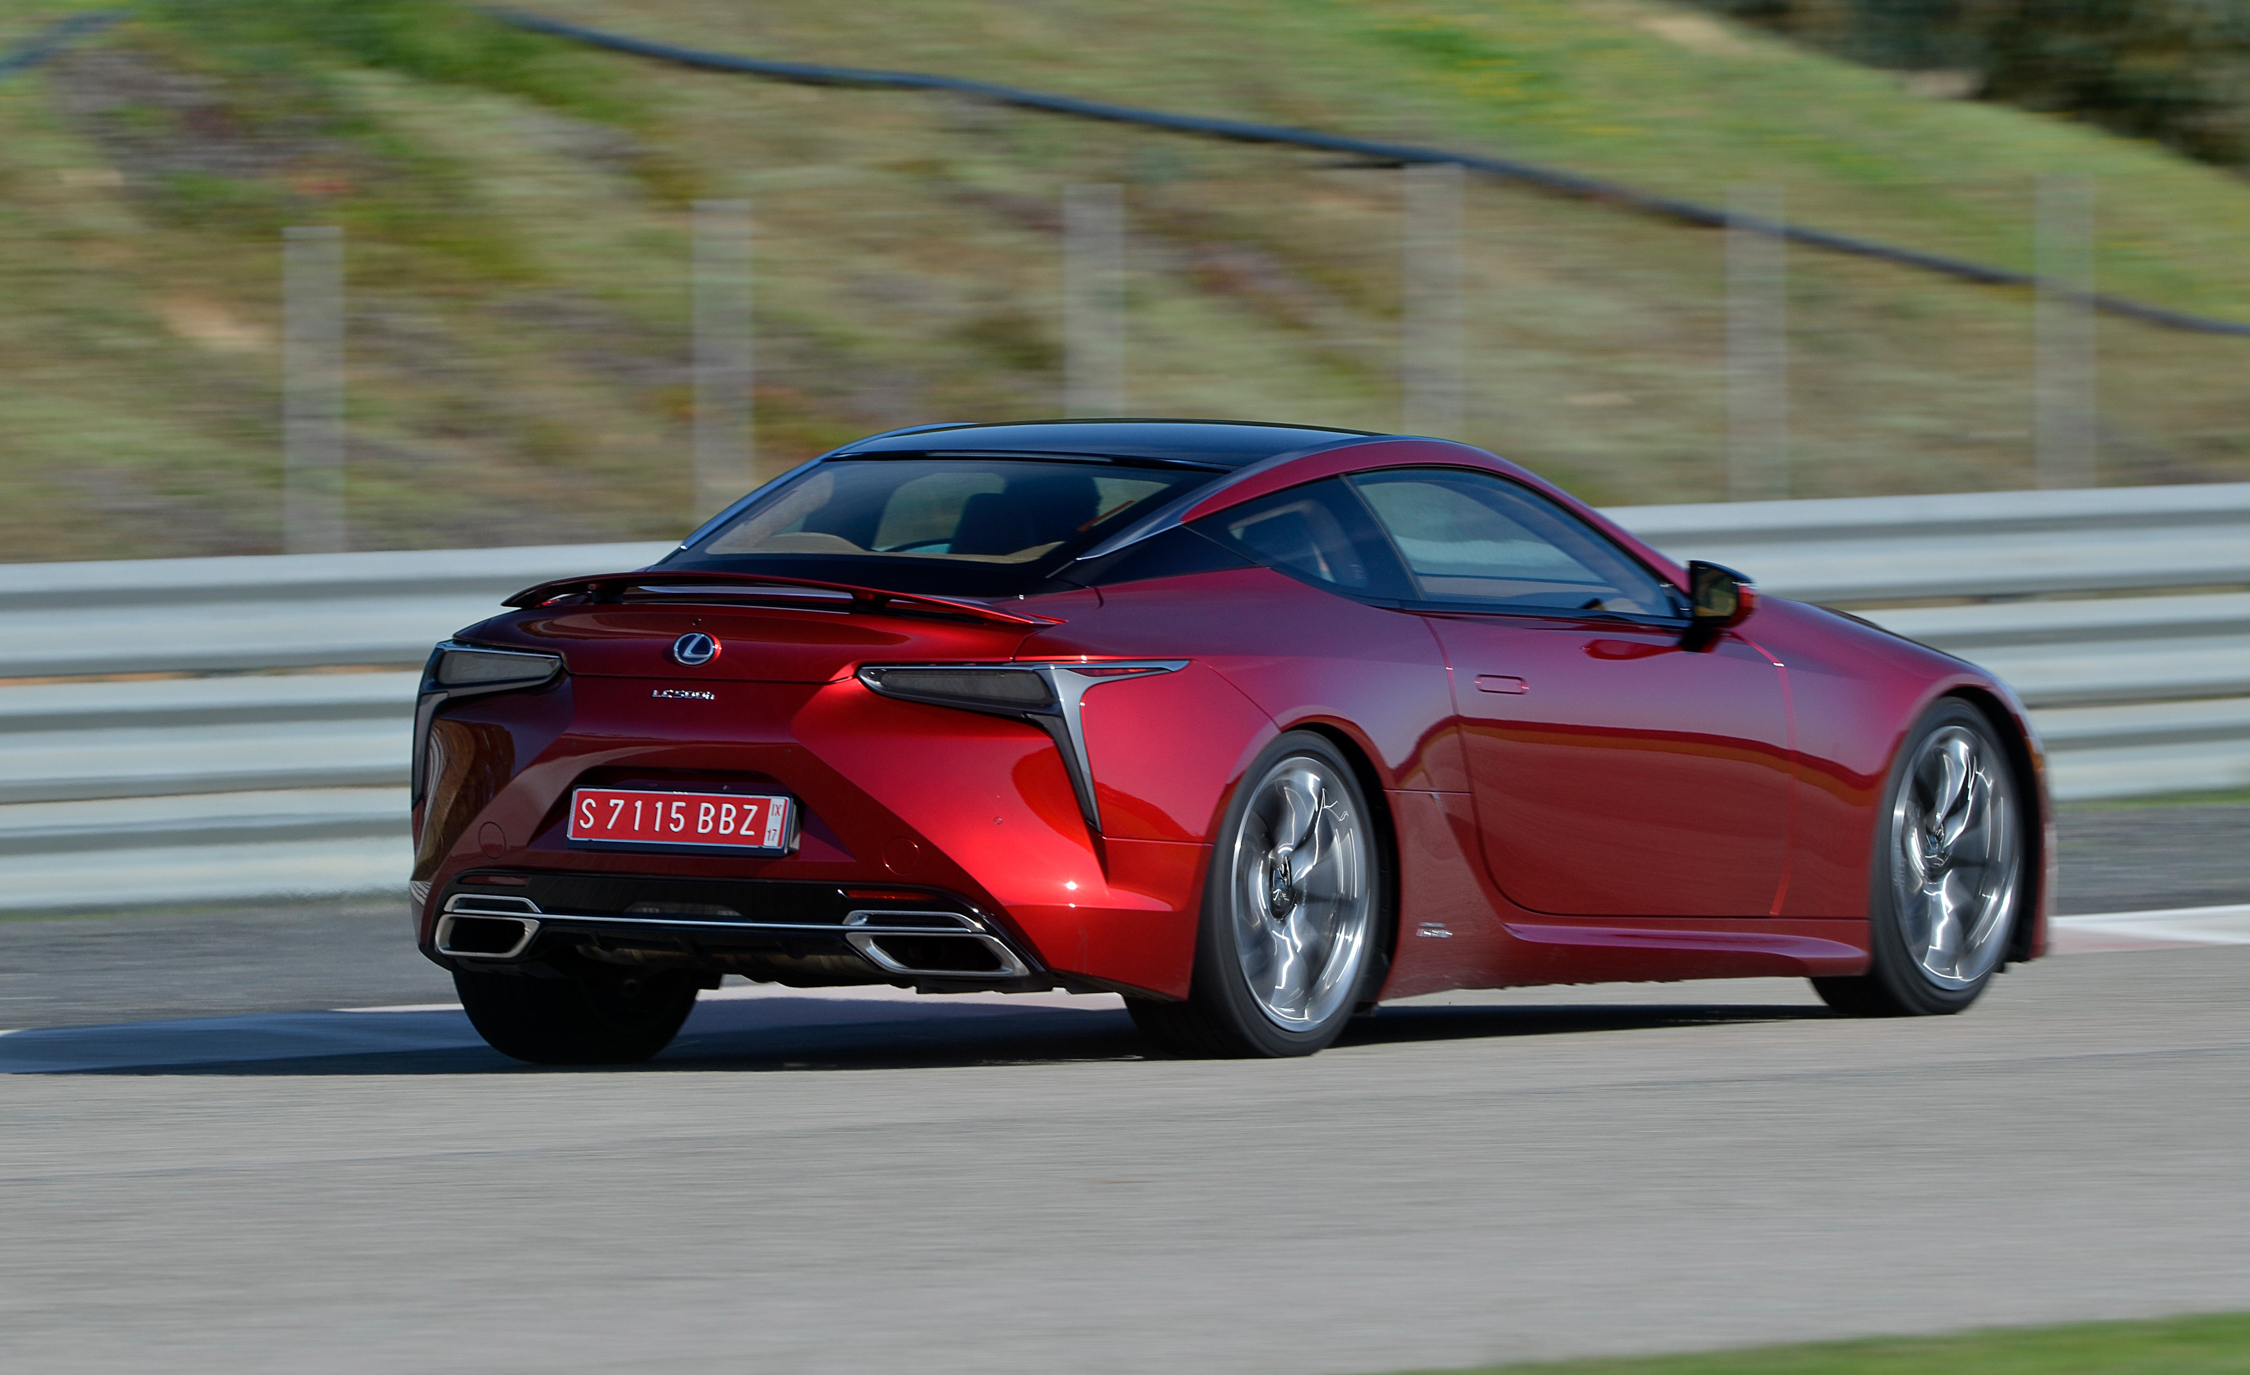 2018 Lexus Lc 500 Red Test Drive Side And Rear View (View 6 of 84)